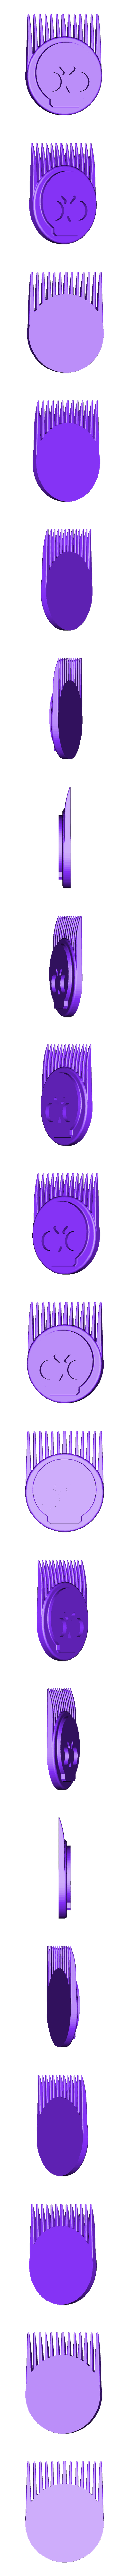 BrawlStarHairBrush.stl Download free STL file Brawl Star hair brush • 3D printable object, EliGreen